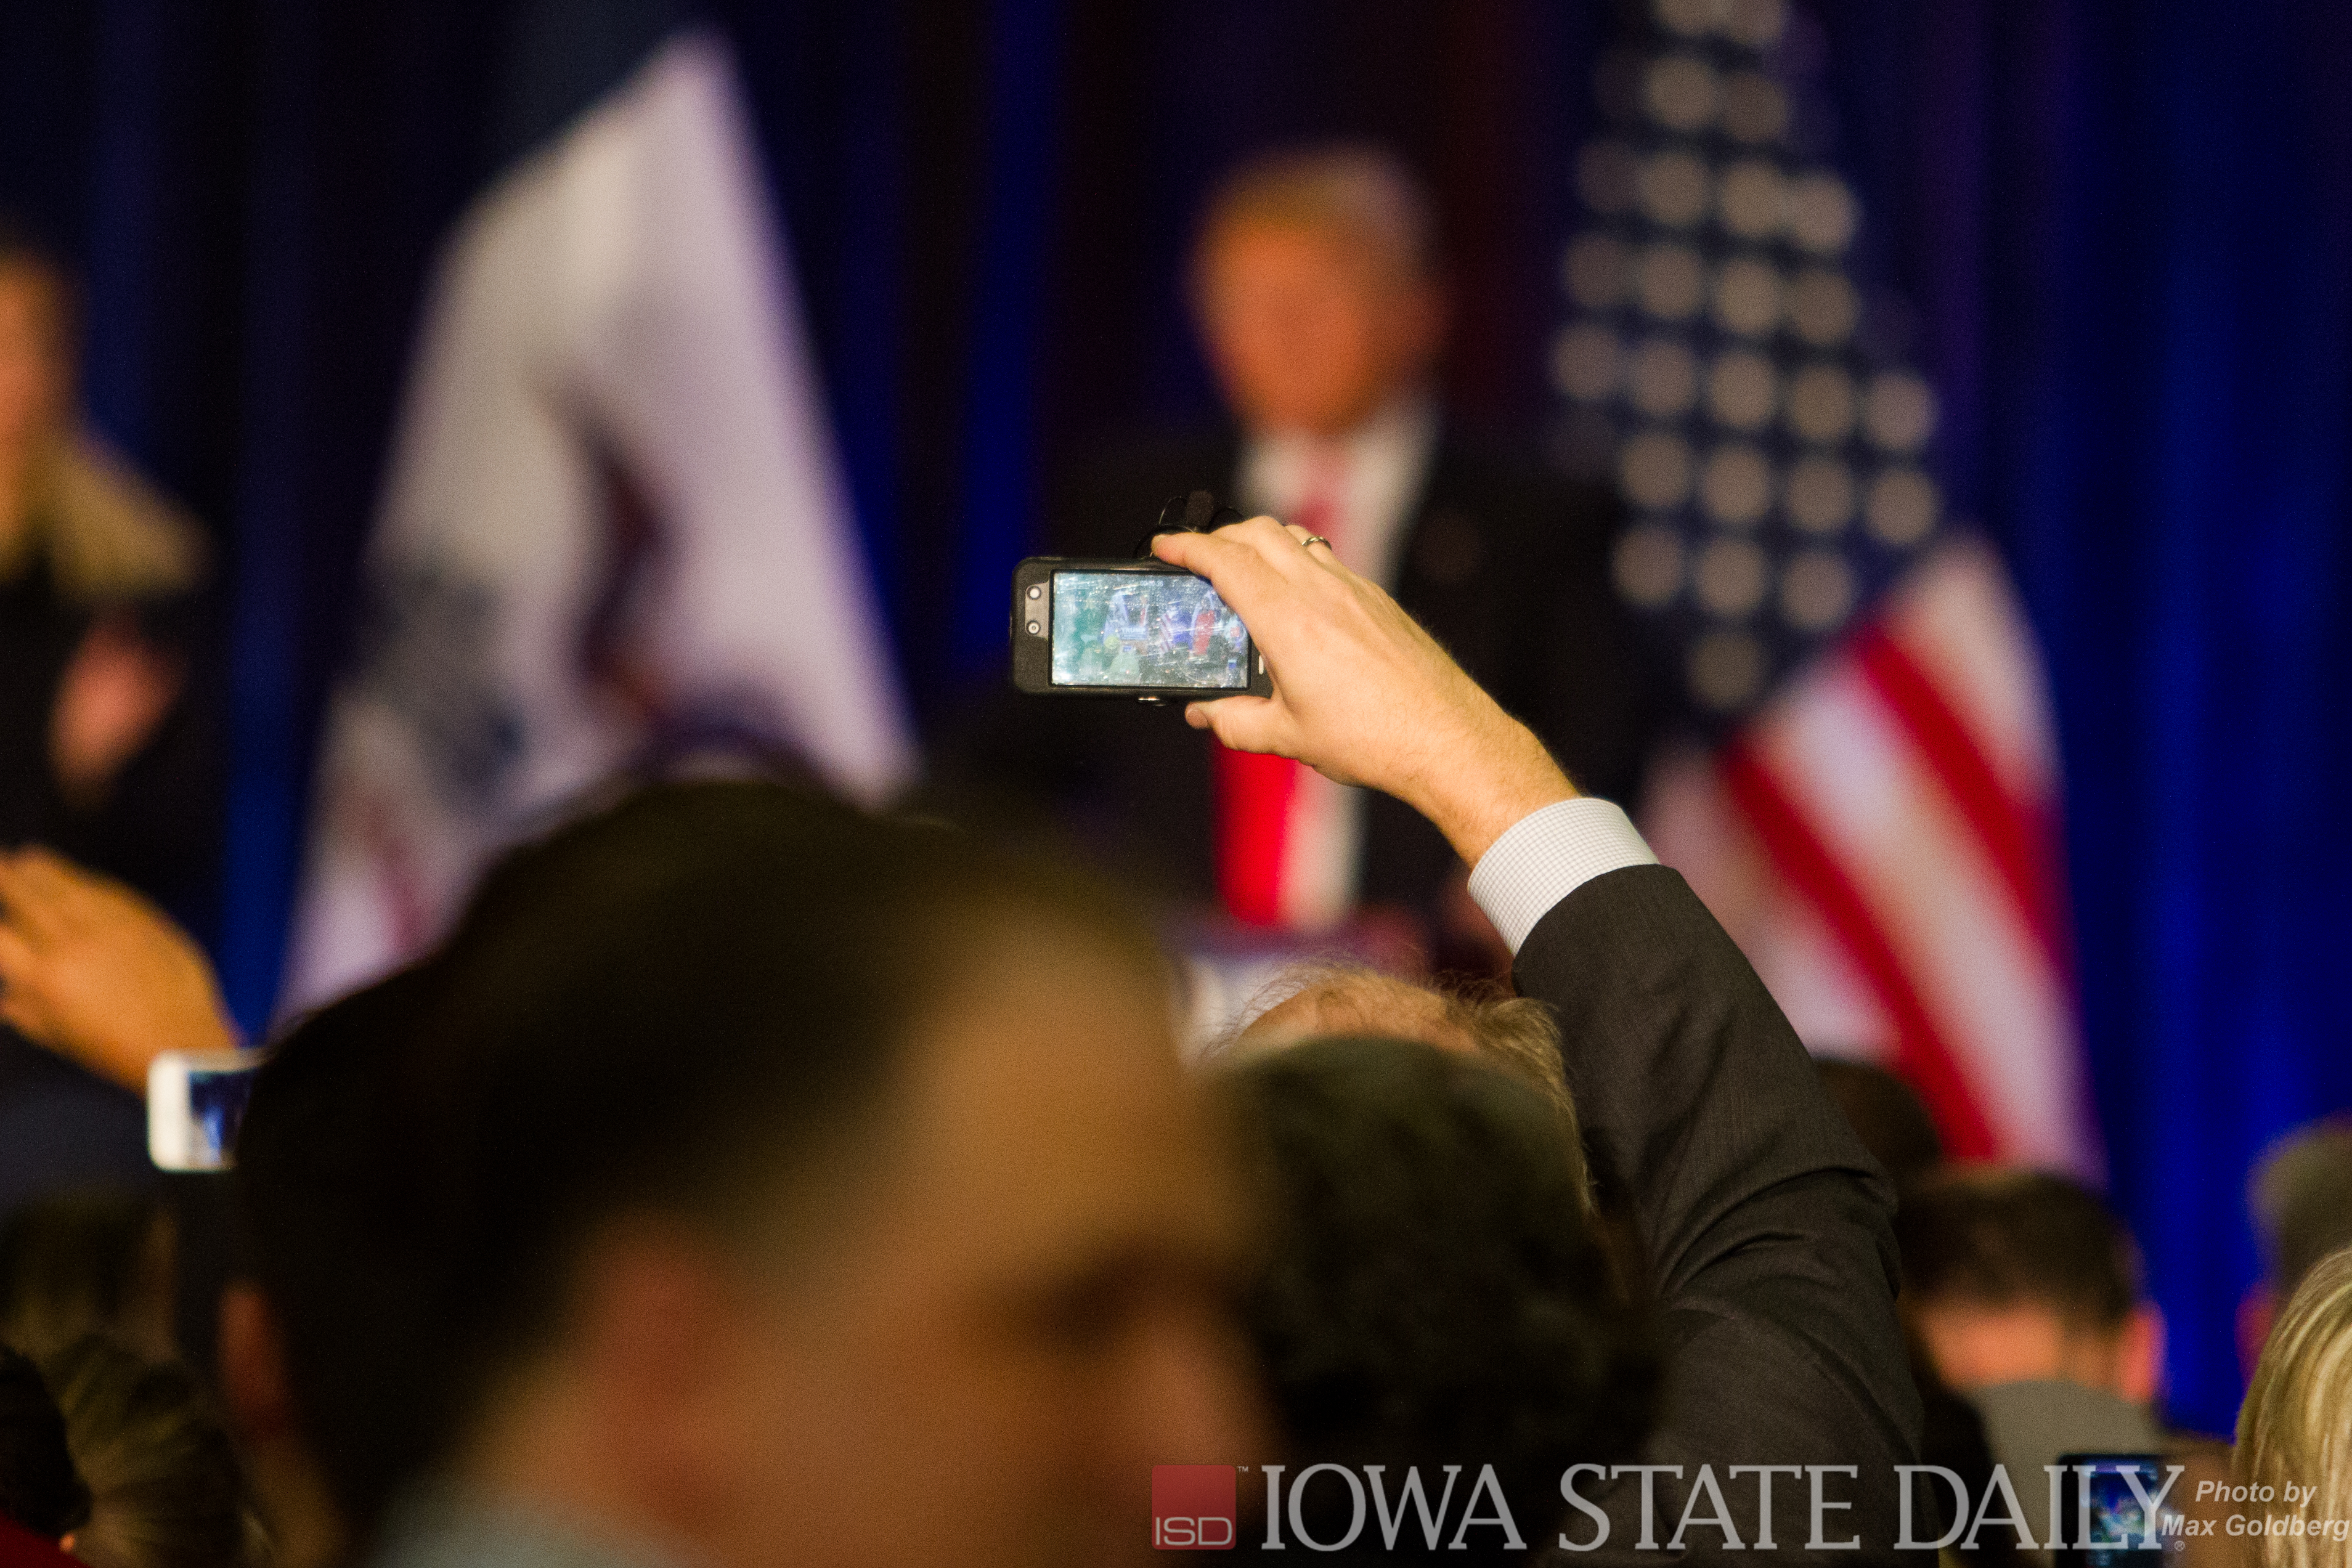 Trump being recorded as he speaks to a crowd. Credit: Max Goldberg/Iowa State Daily.